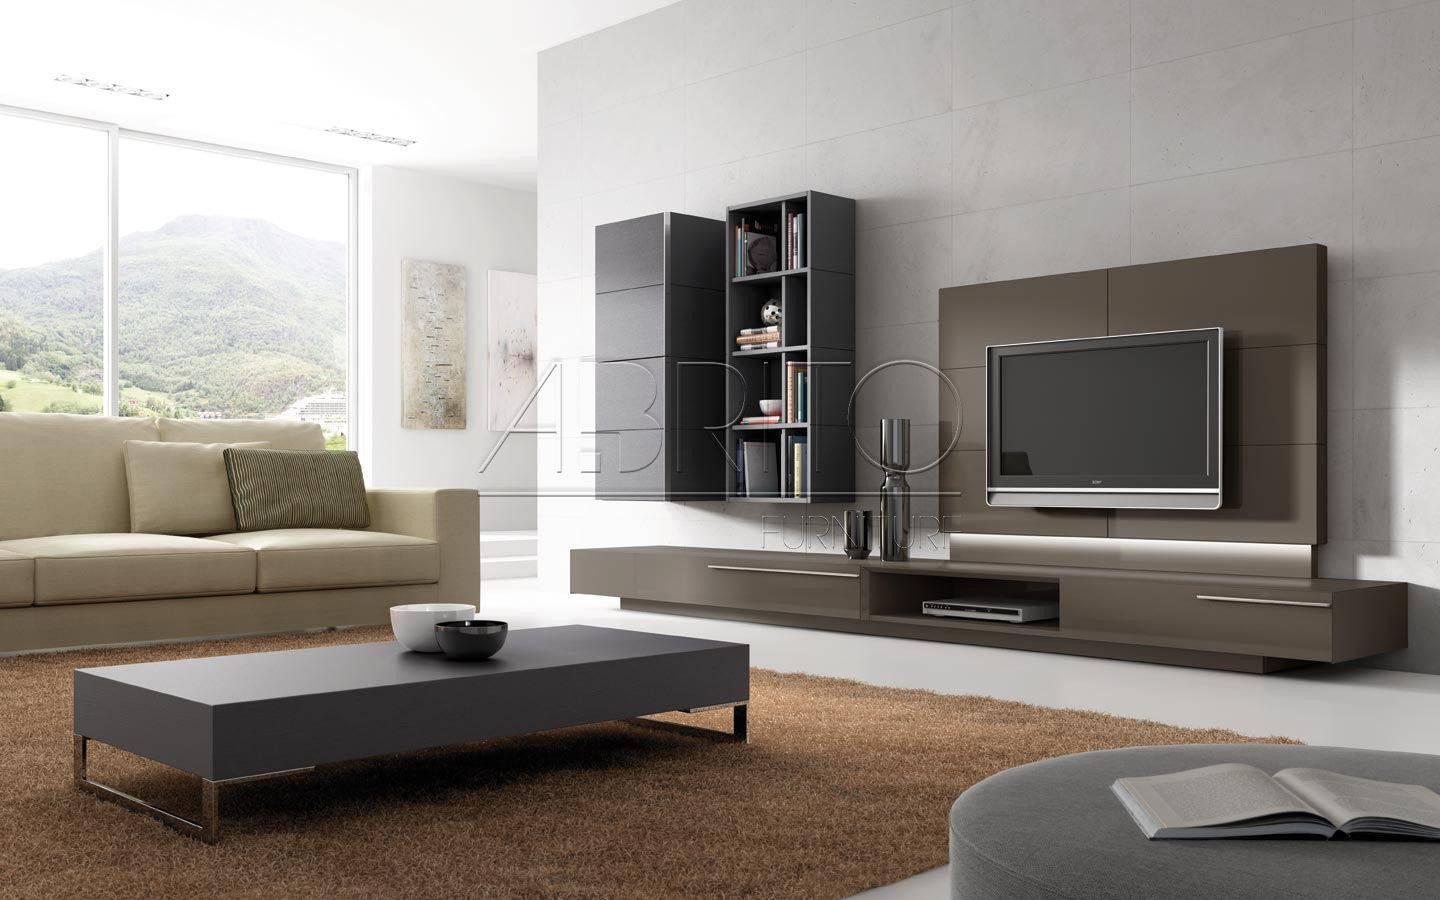 Marvelous Modern Contemporary Tv Wall Units 15 With Additional intended for Contemporary Tv Wall Units (Image 12 of 15)